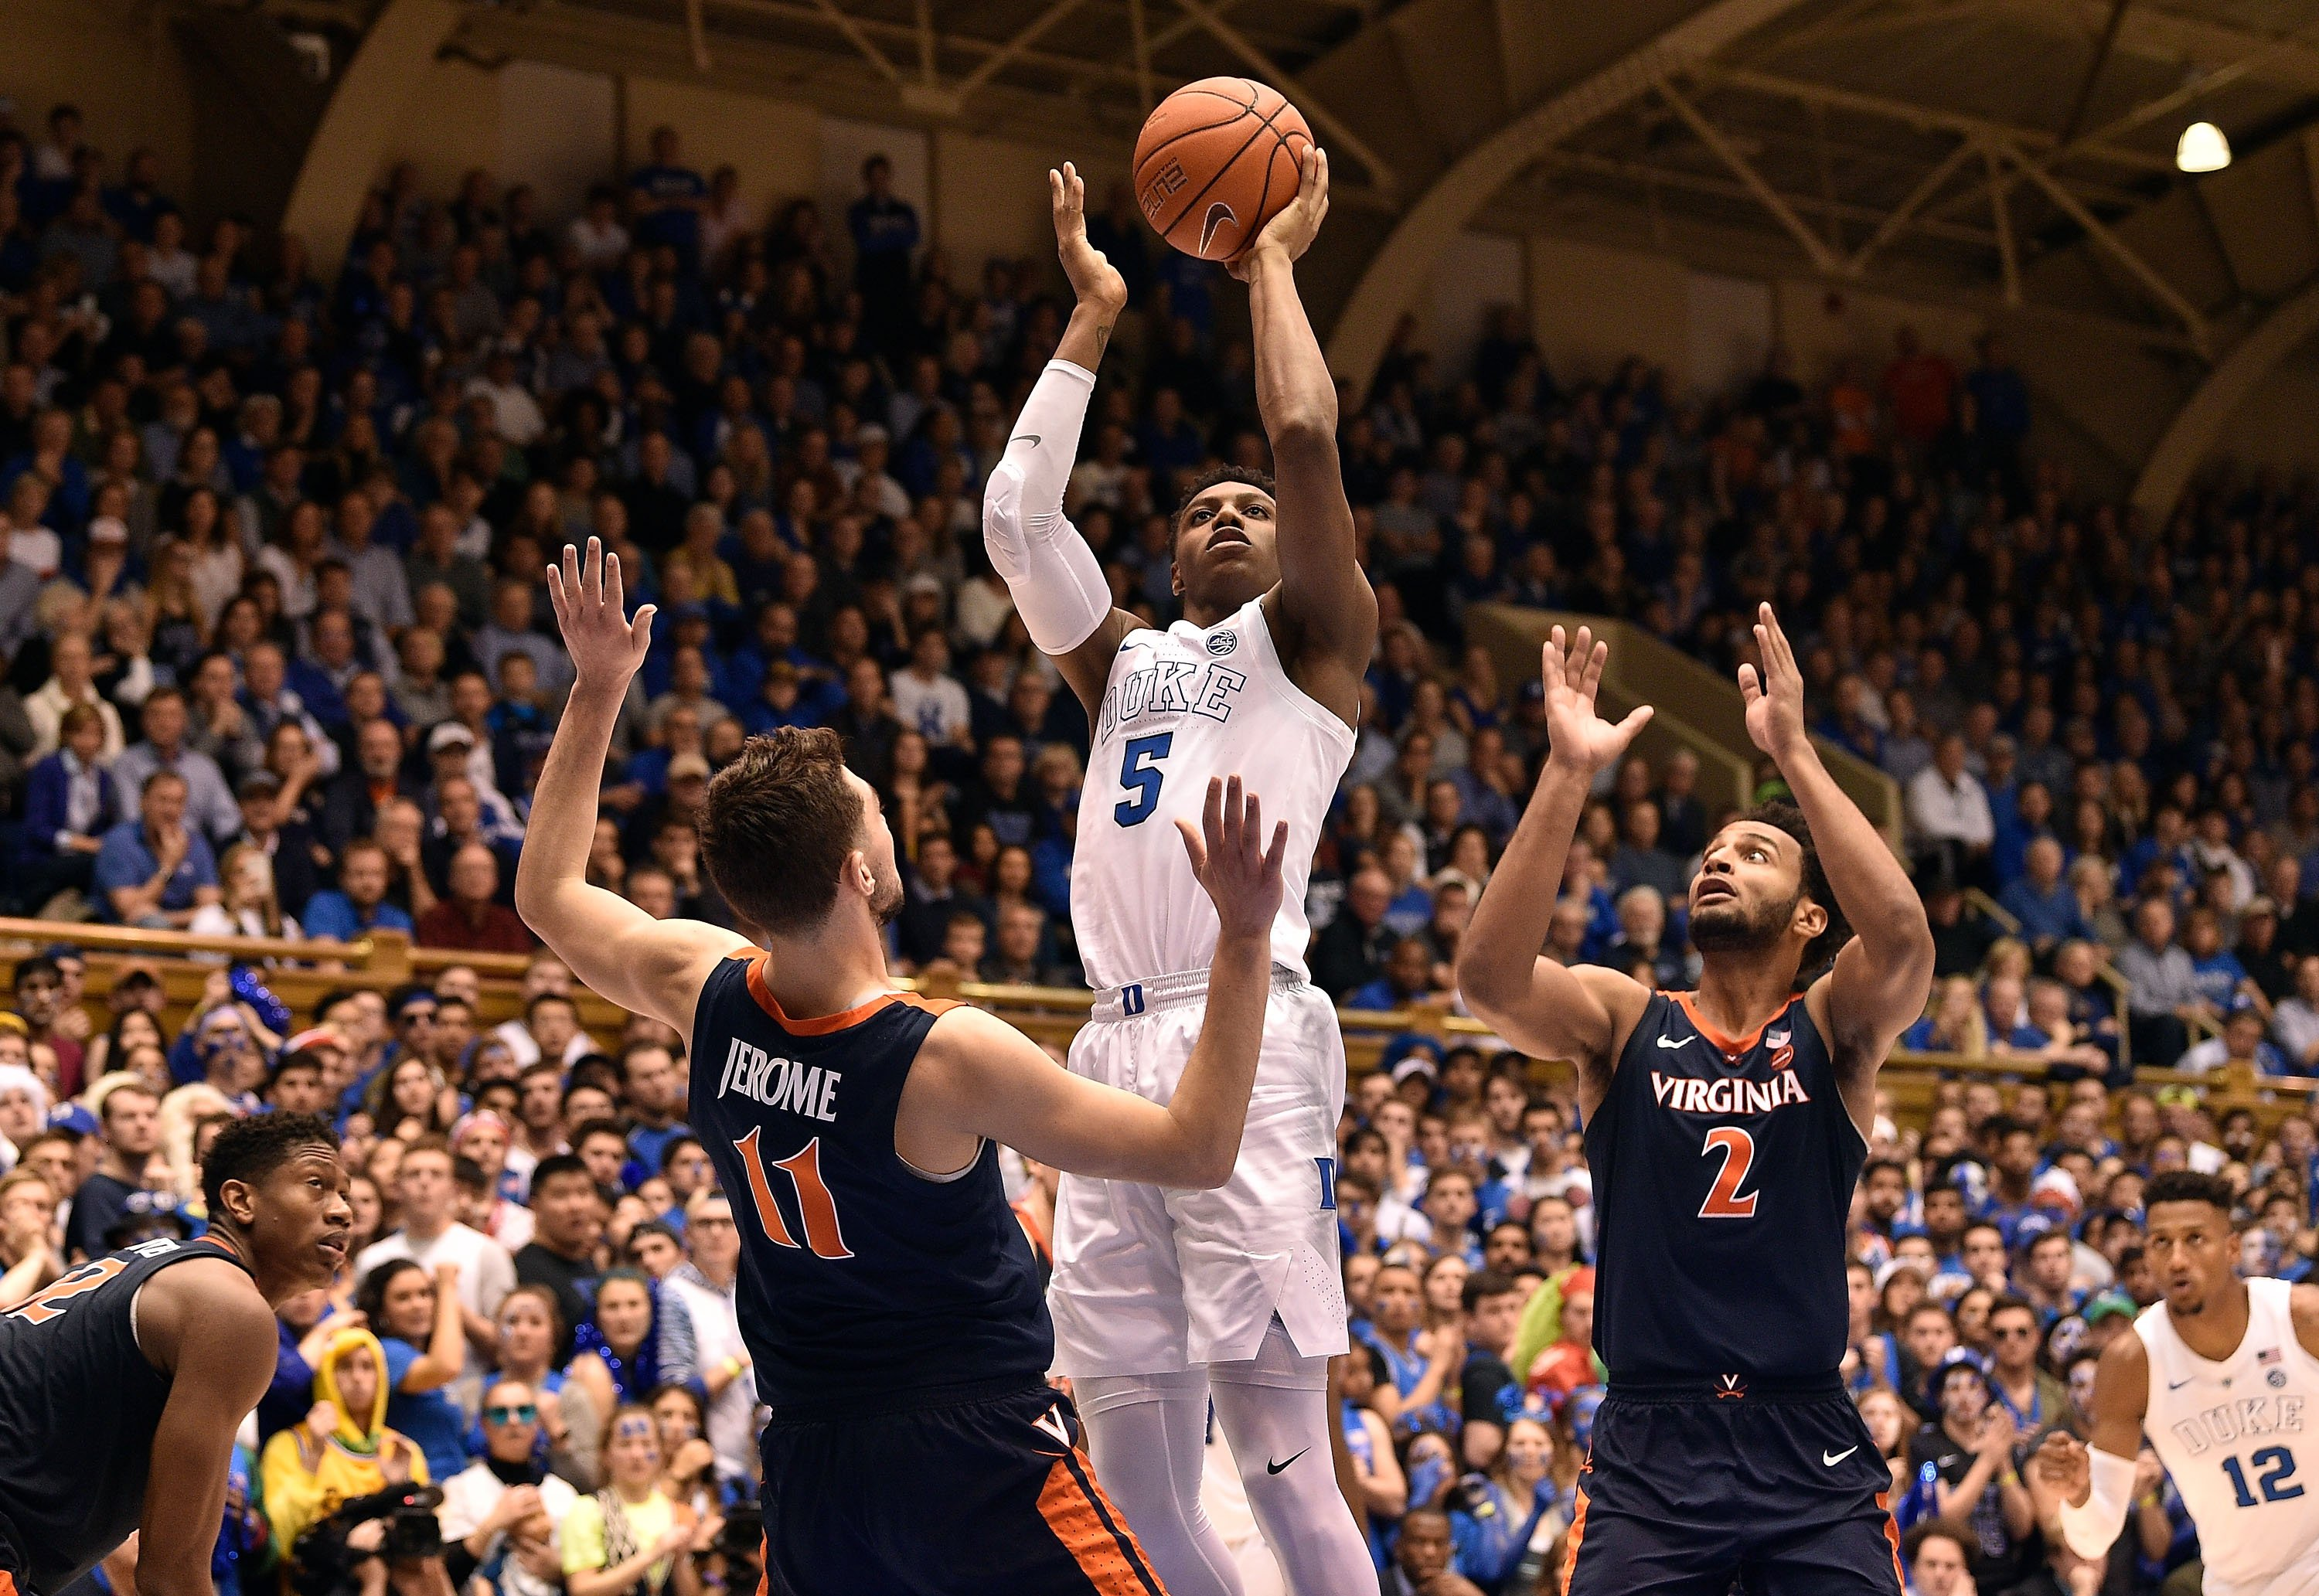 No. 1 Duke takes down No. 4 Virginia, leaving no unbeaten teams